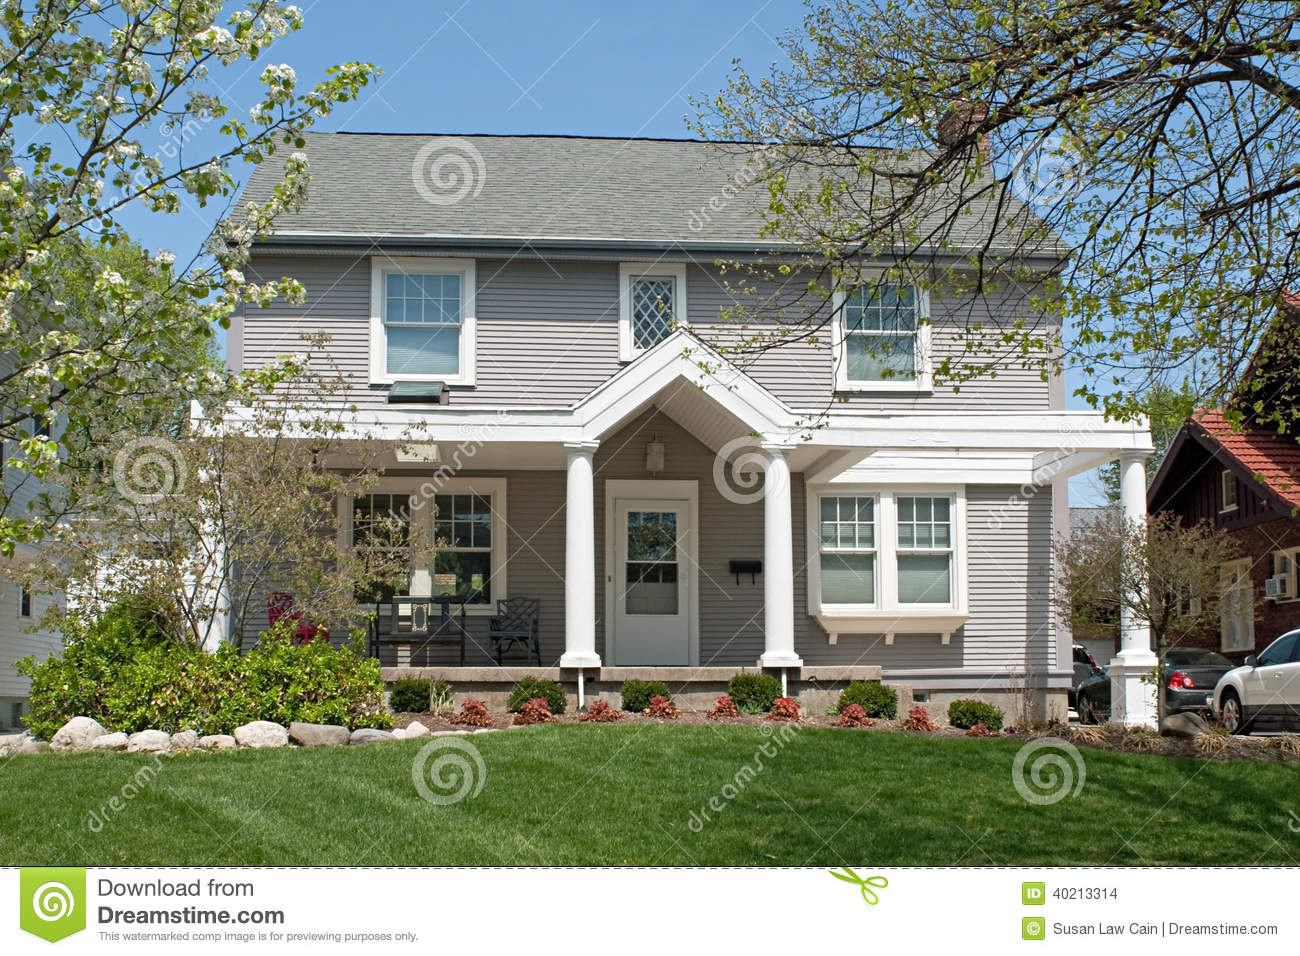 Tan Colonial House In Spring Stock Photo Image 40213314